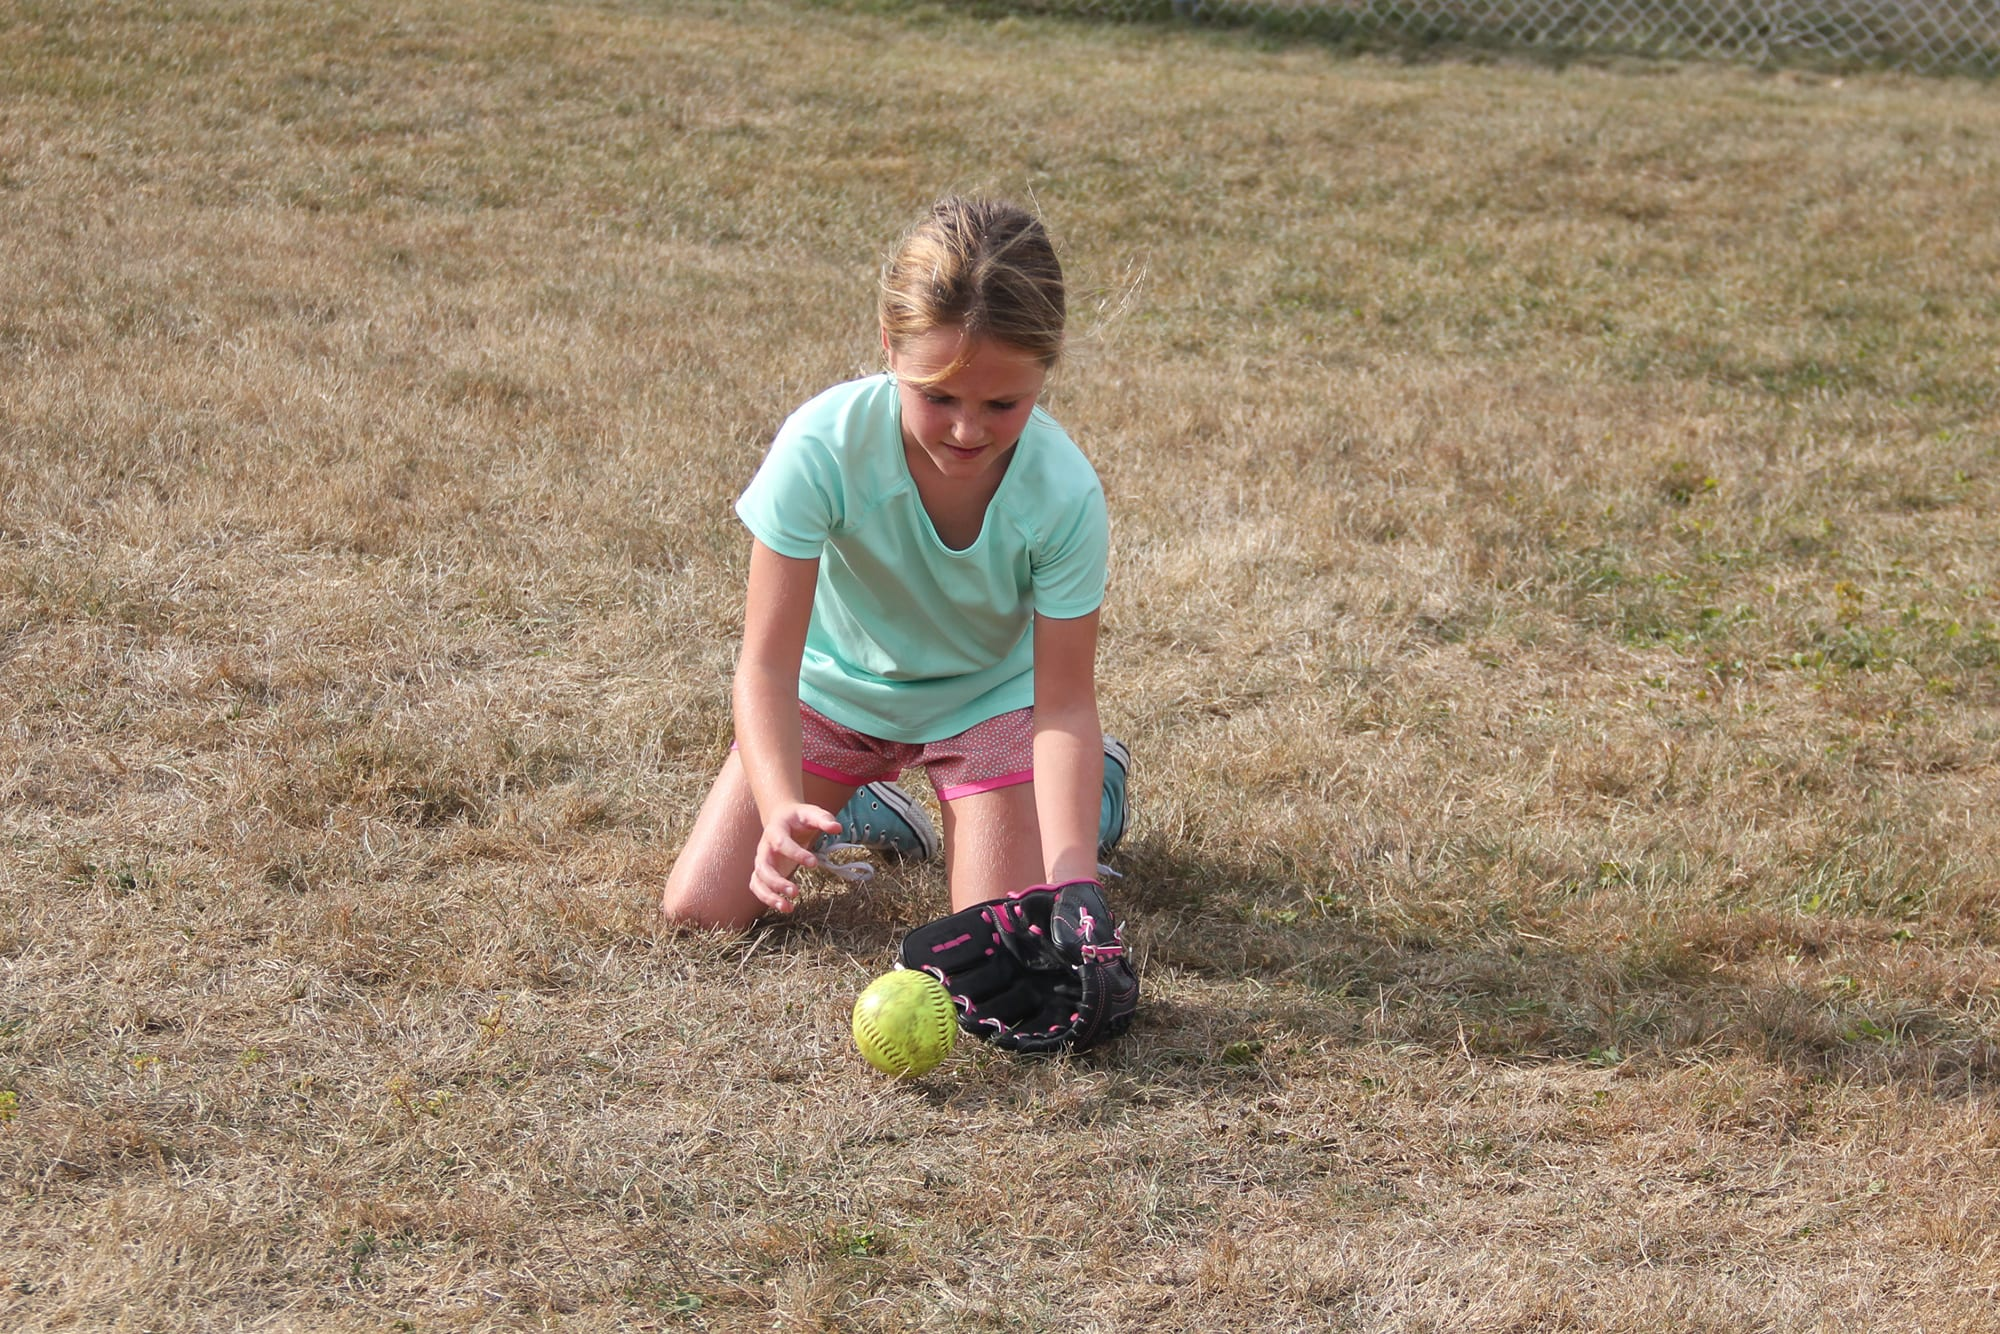 player catching a ground ball